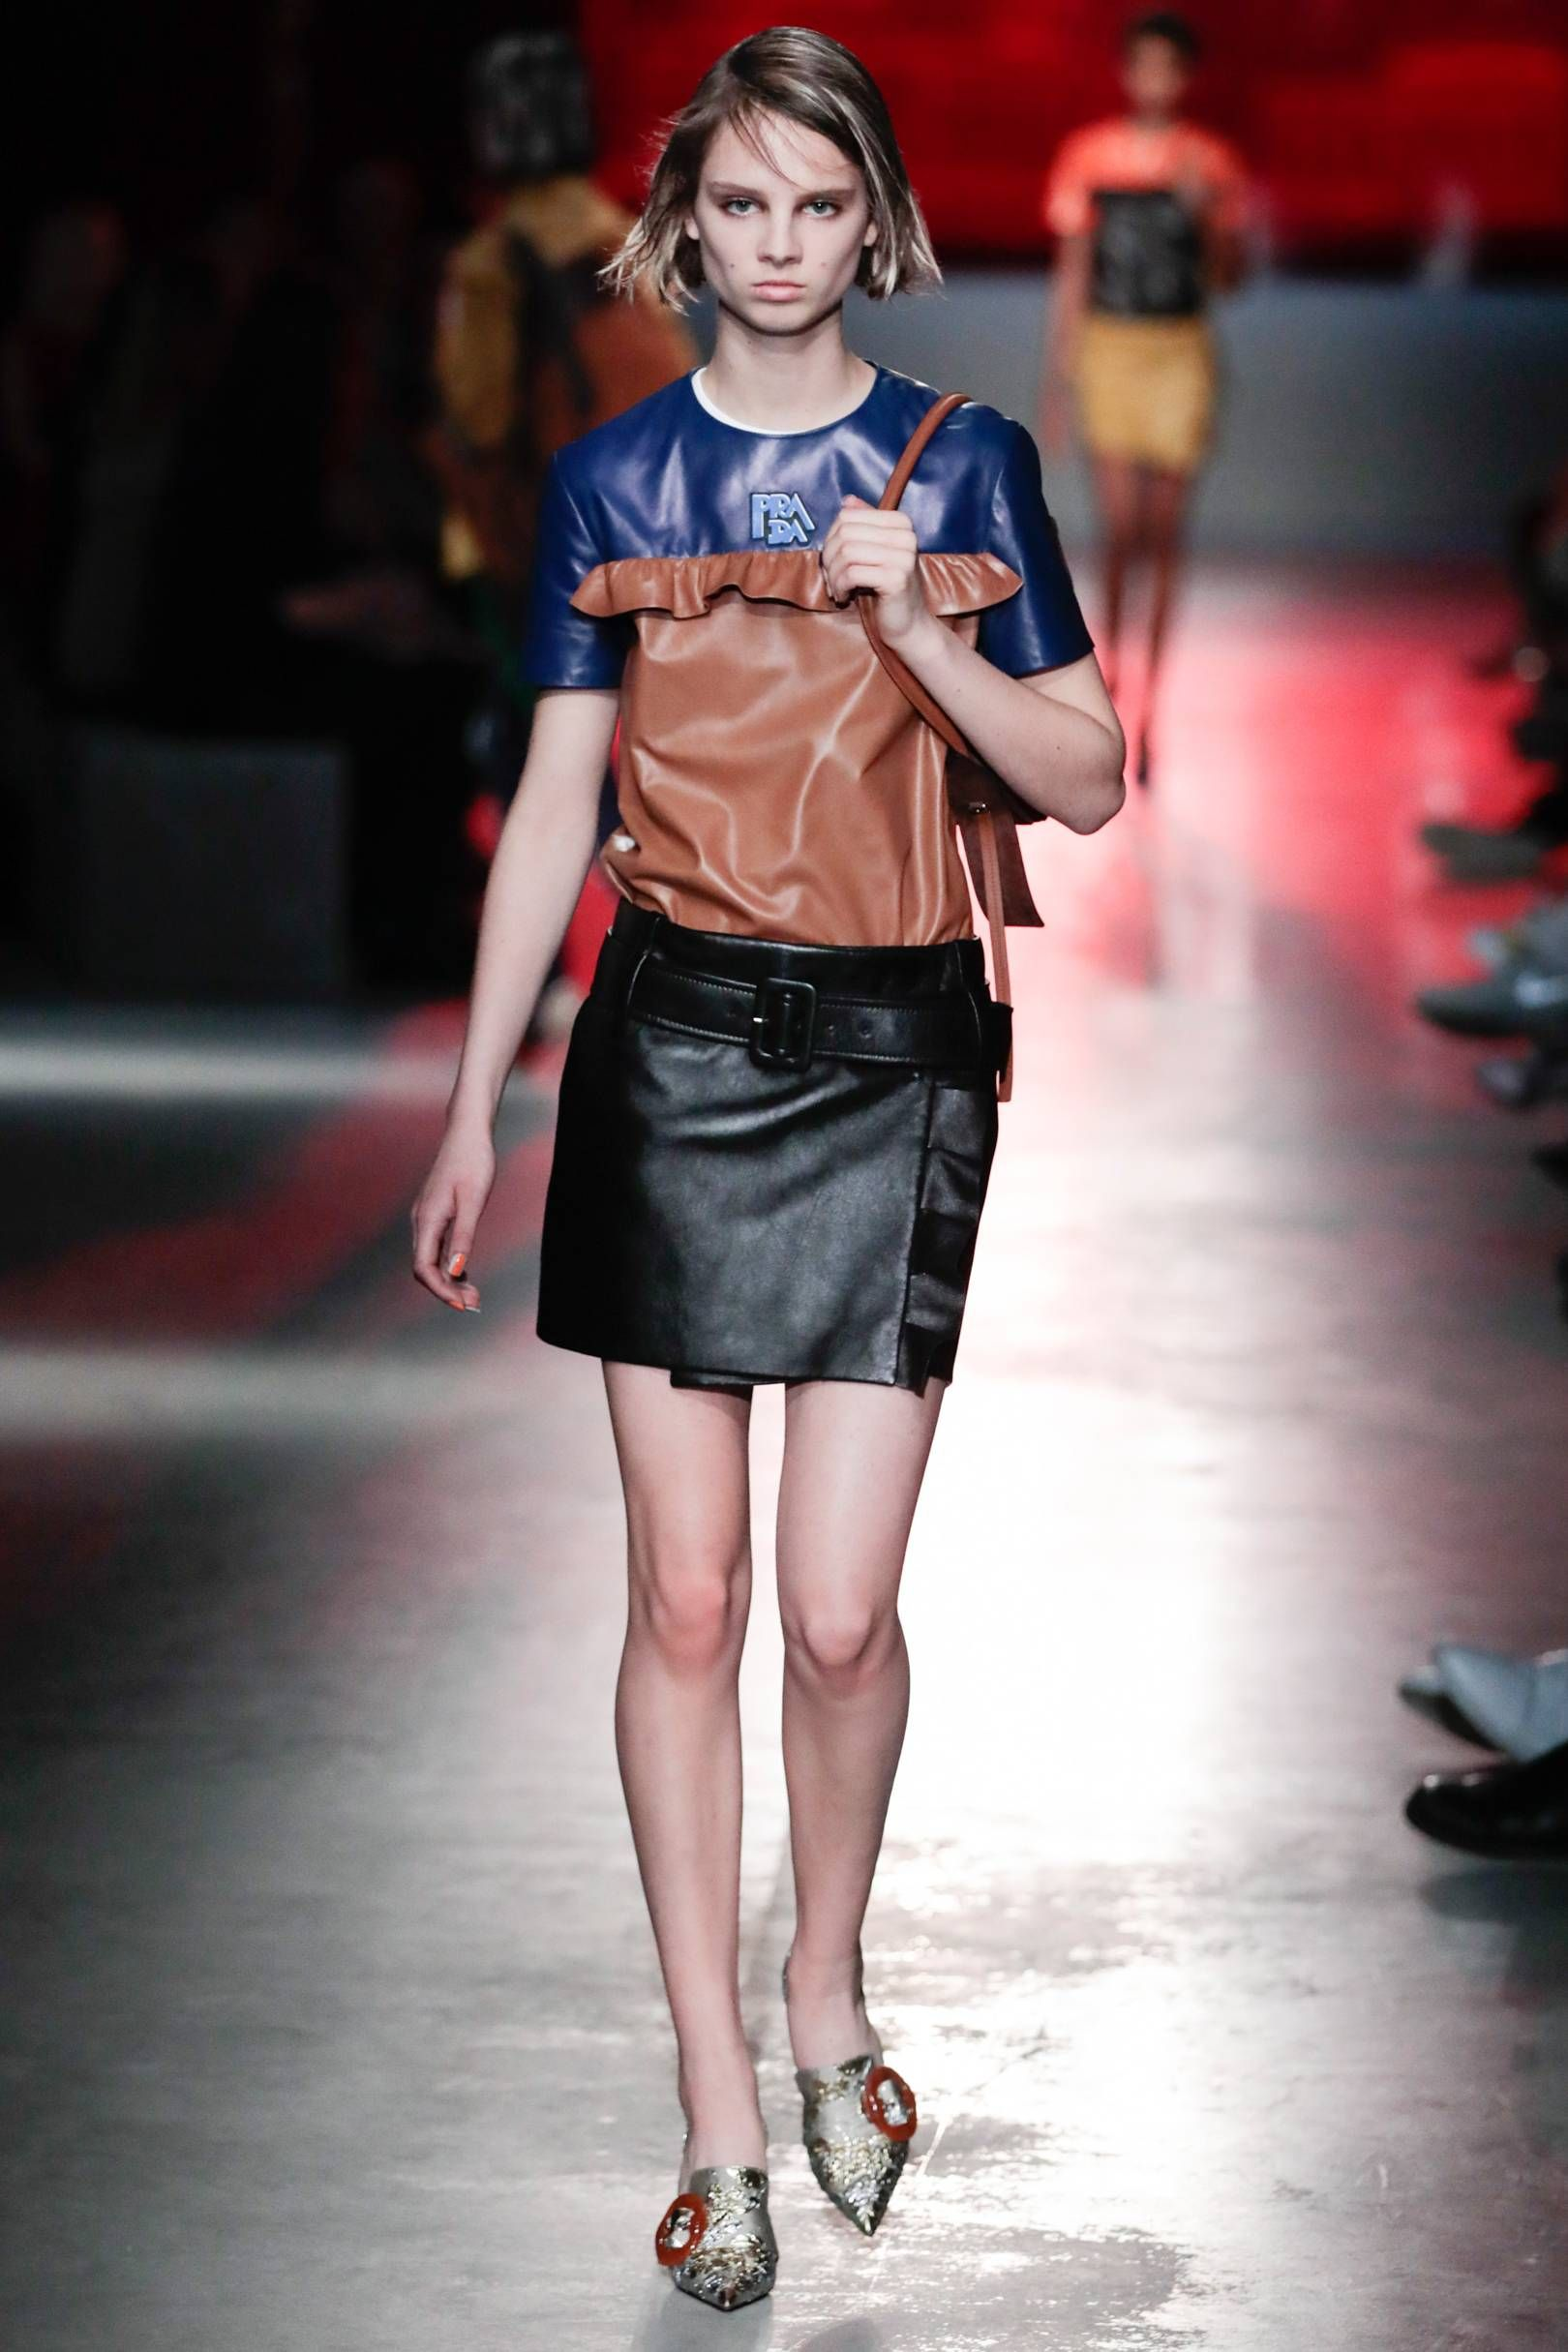 Prada Joins Milan's Cruise Runway Show Calendar Prada Joins Milan's Cruise Runway Show Calendar new photo